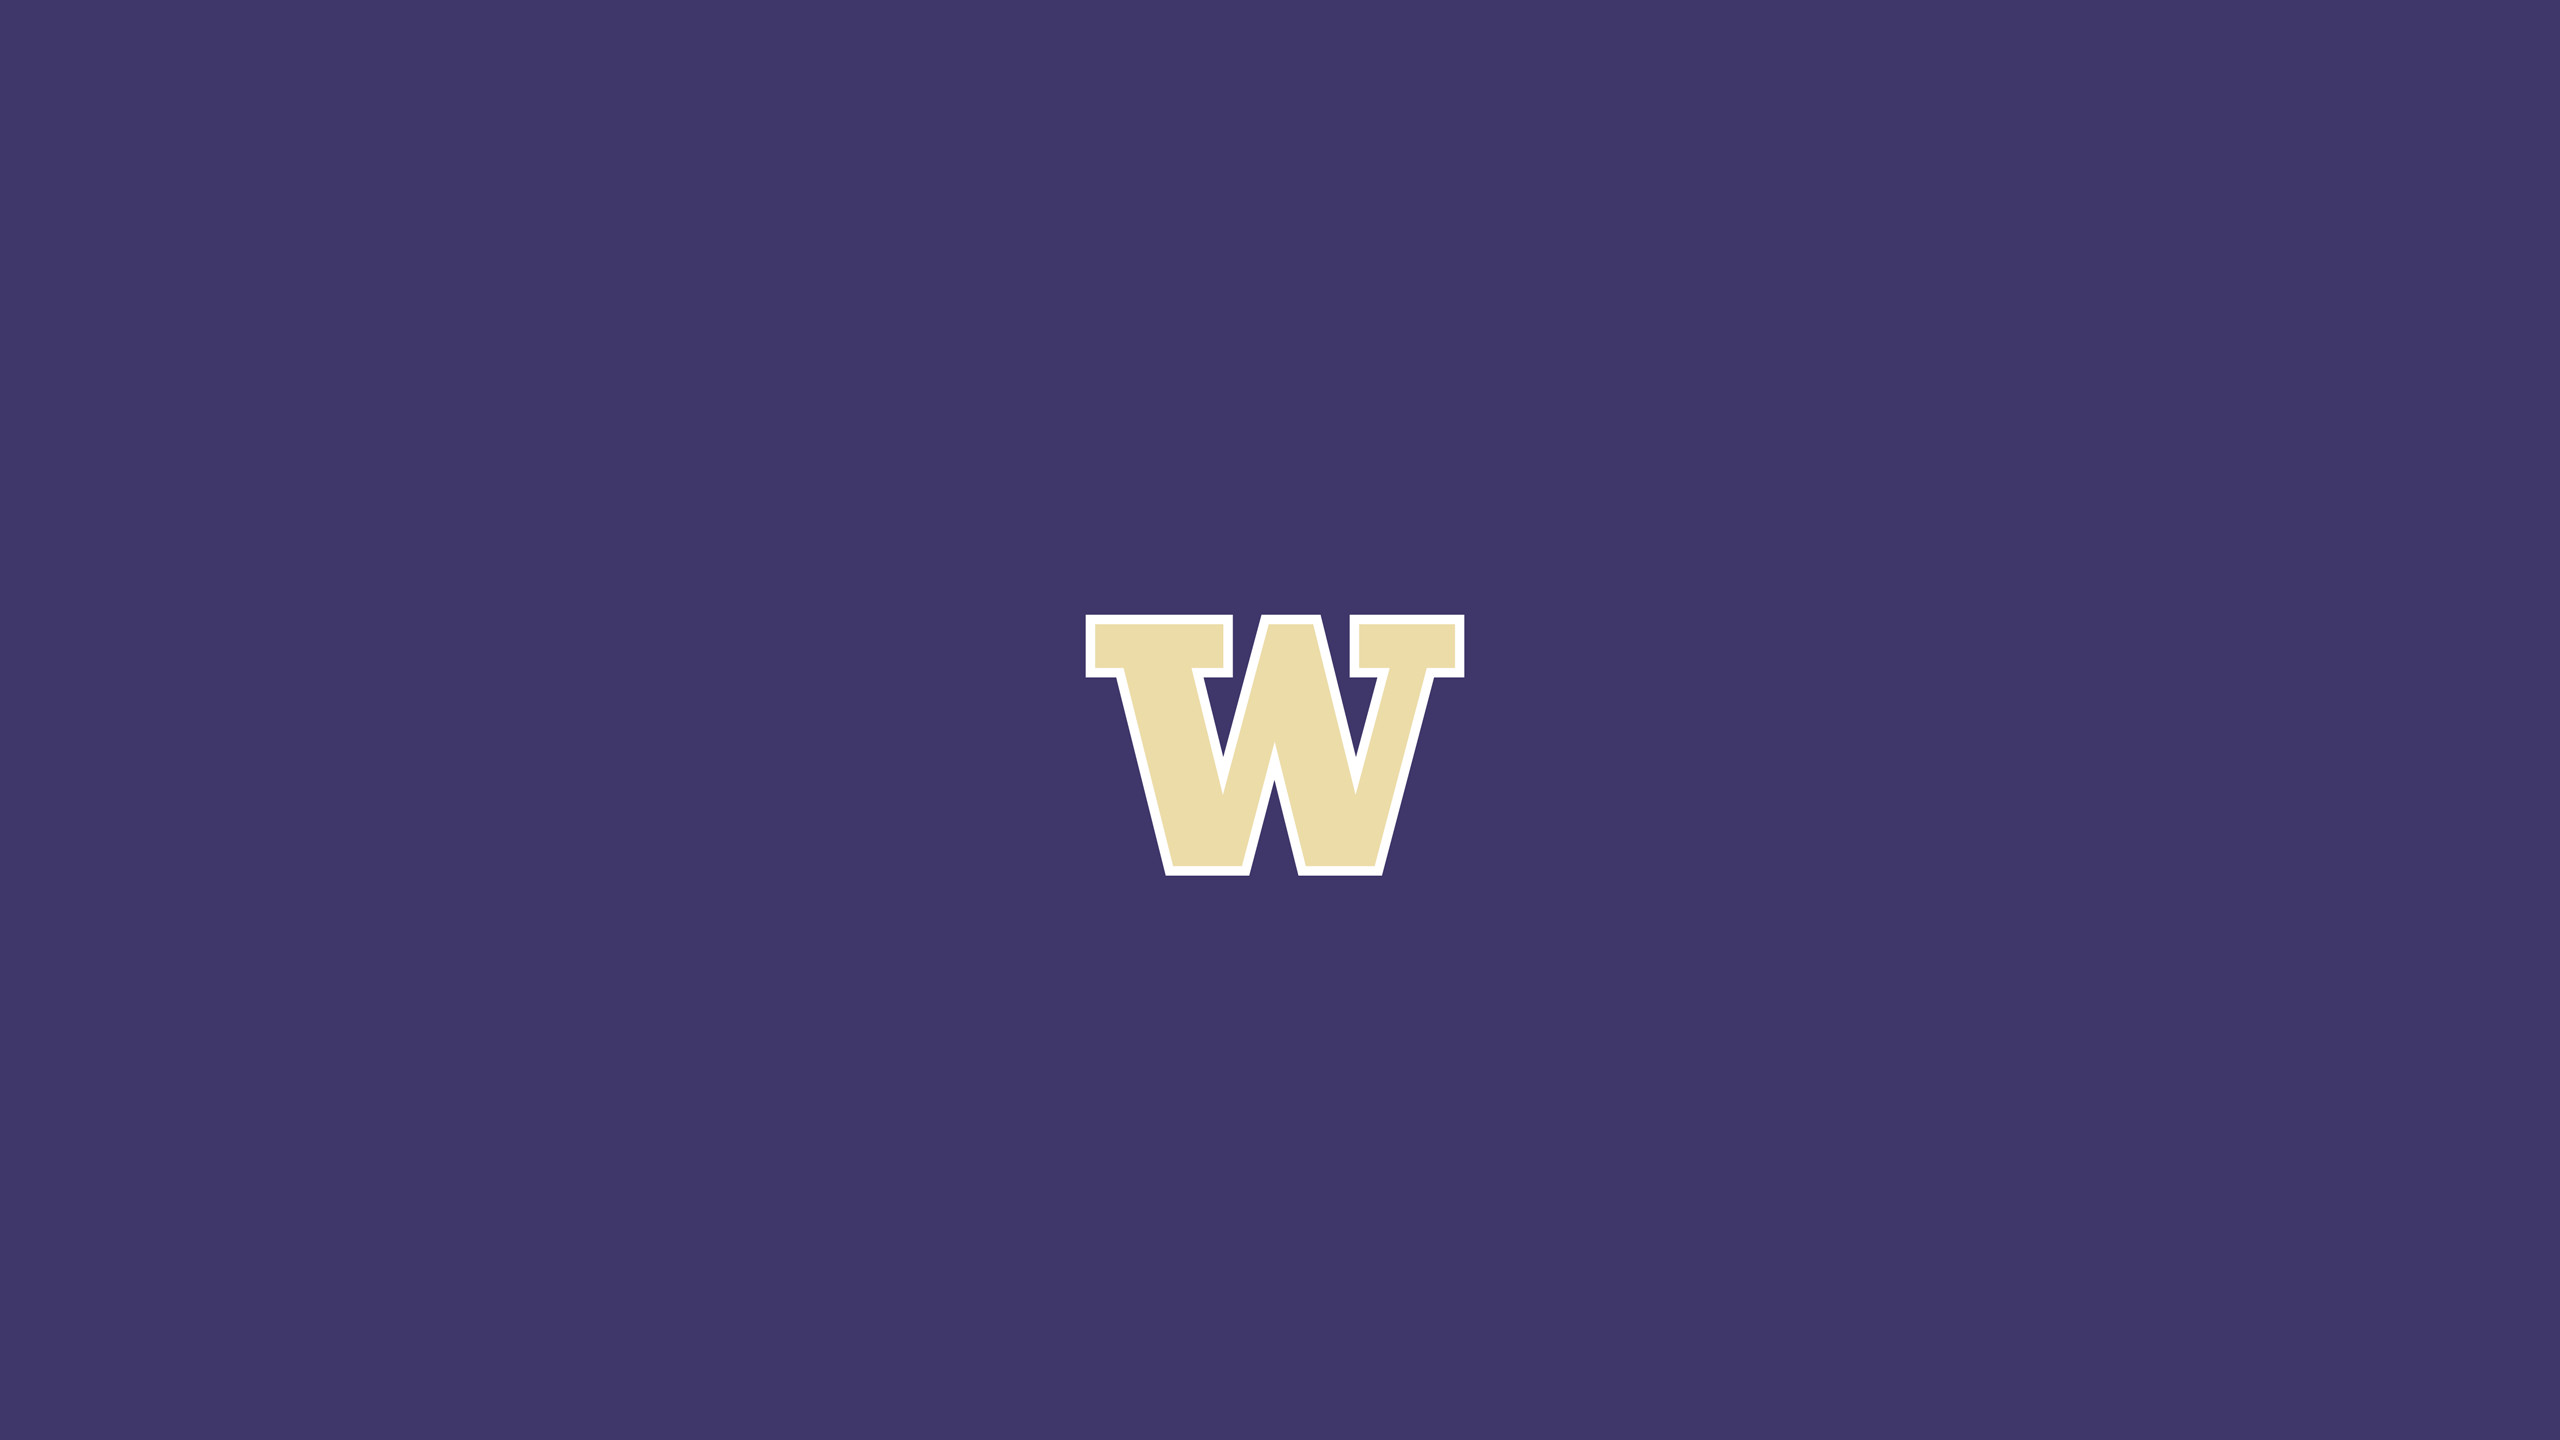 """Busch lite is """"Pullman Water"""" Pendelton is a close second. My office … 0  HTML code. University of Washington Background   Download HD Wallpapers"""